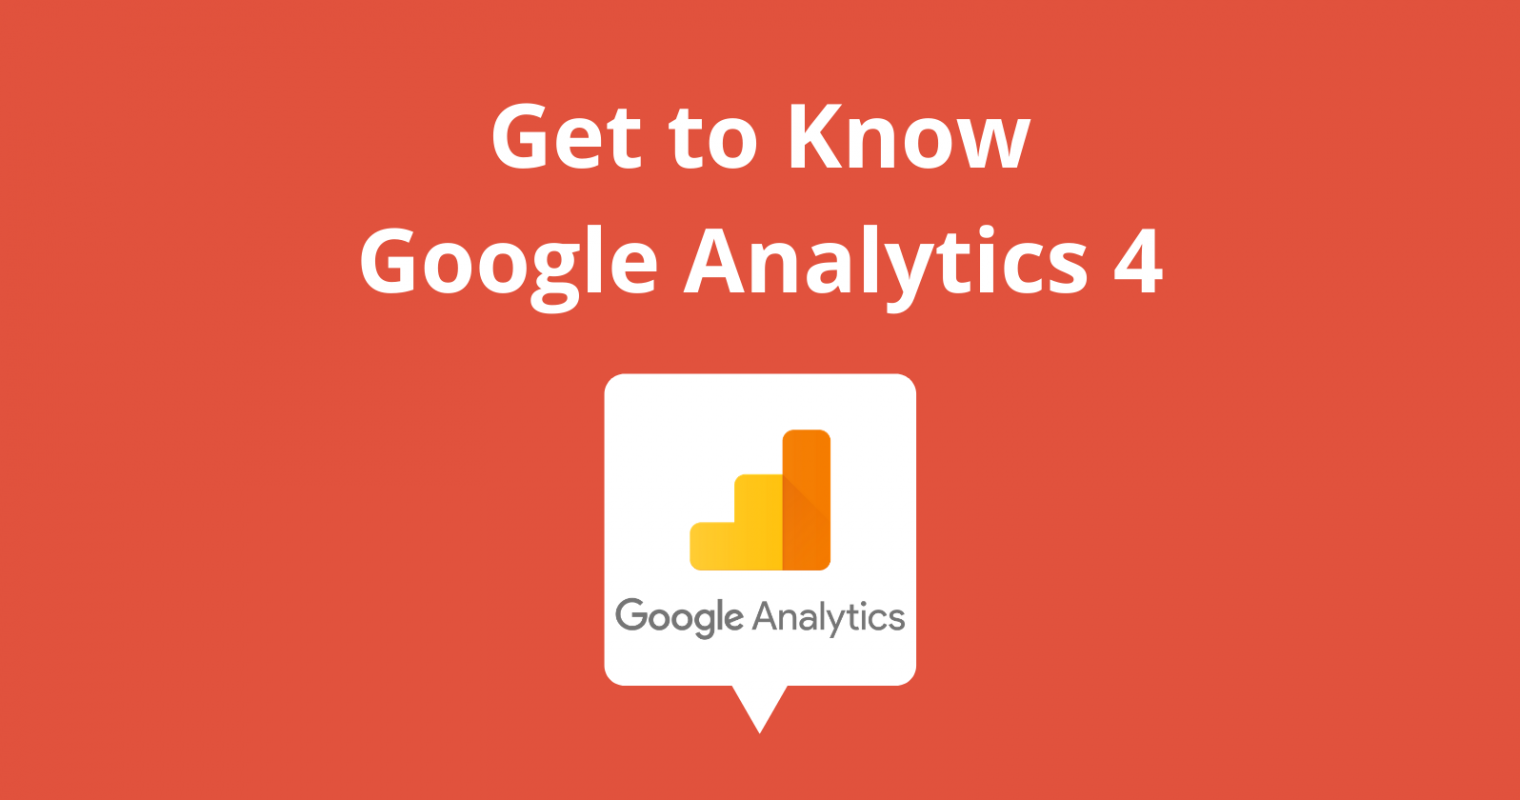 Get to Know Google Analytics 4: A Complete Guide